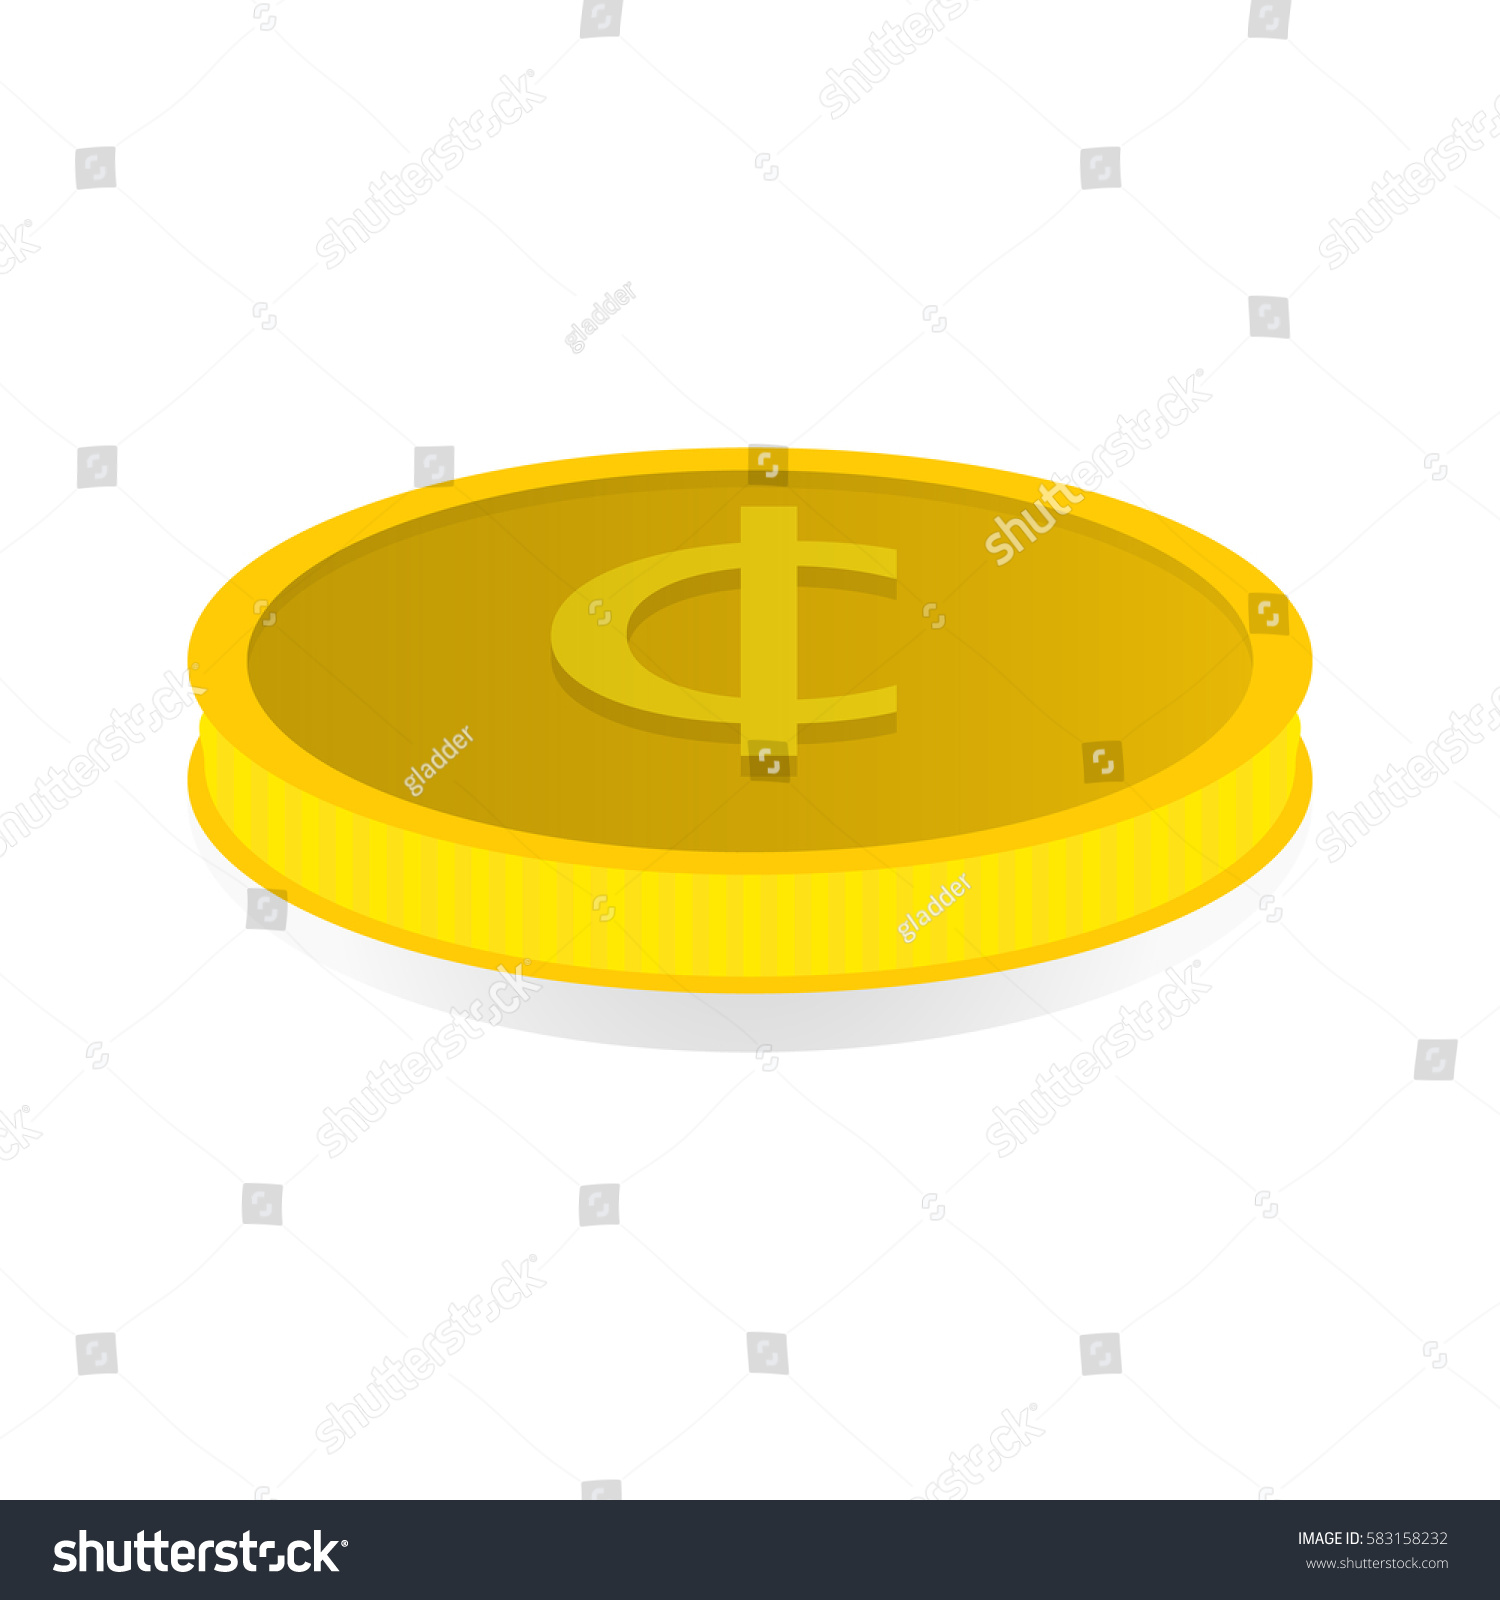 Vector Illustration Of A Gold Coin With Symbol Of Tugrik Ez Canvas